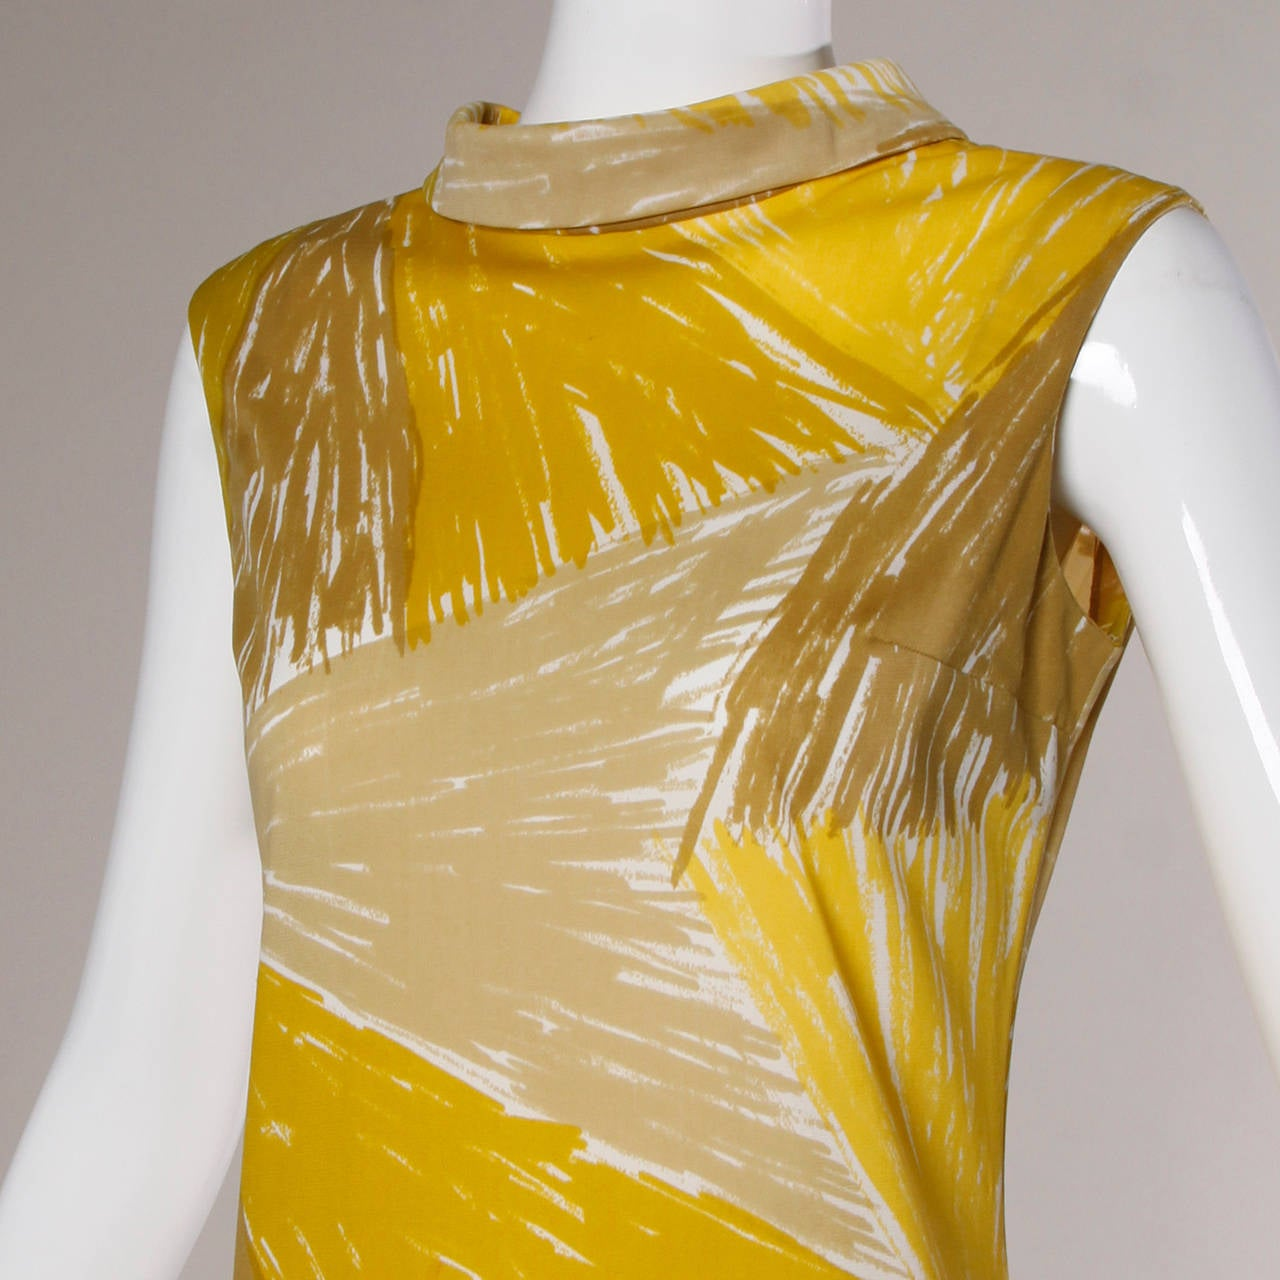 Darling vintage mini dress in shades of yellow by textile designer Vera Neumann.  Details:  Unlined Back Zip and Hook Closure Marked Size: 10 Color: Dark Mustard/ Ash/ Yellow/ White Fabric: 100% Nylon Label: Vera  Measurements:  Bust: